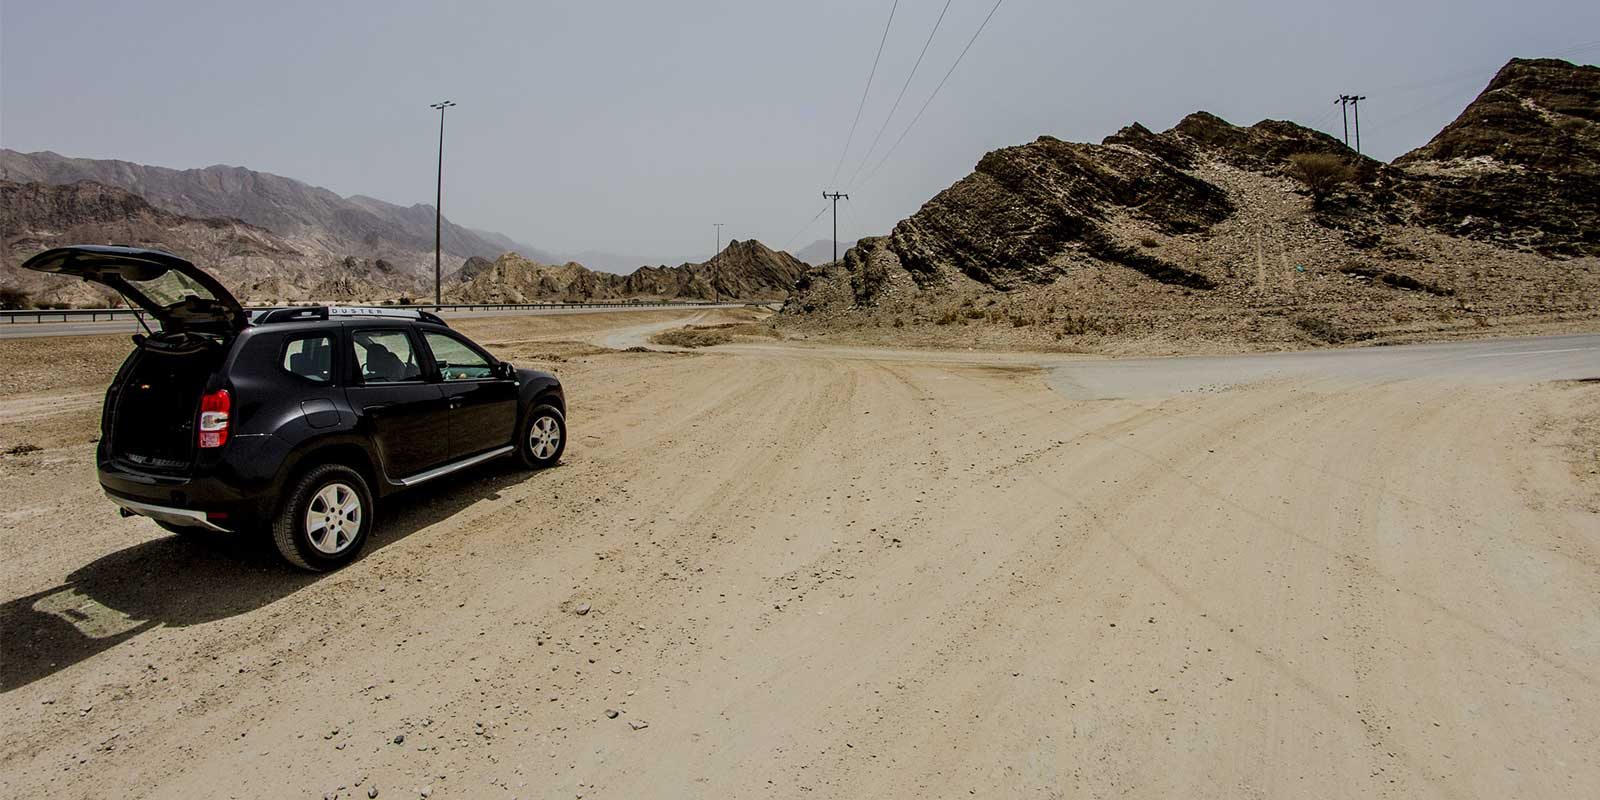 Long Desert Roadtrips through Oman